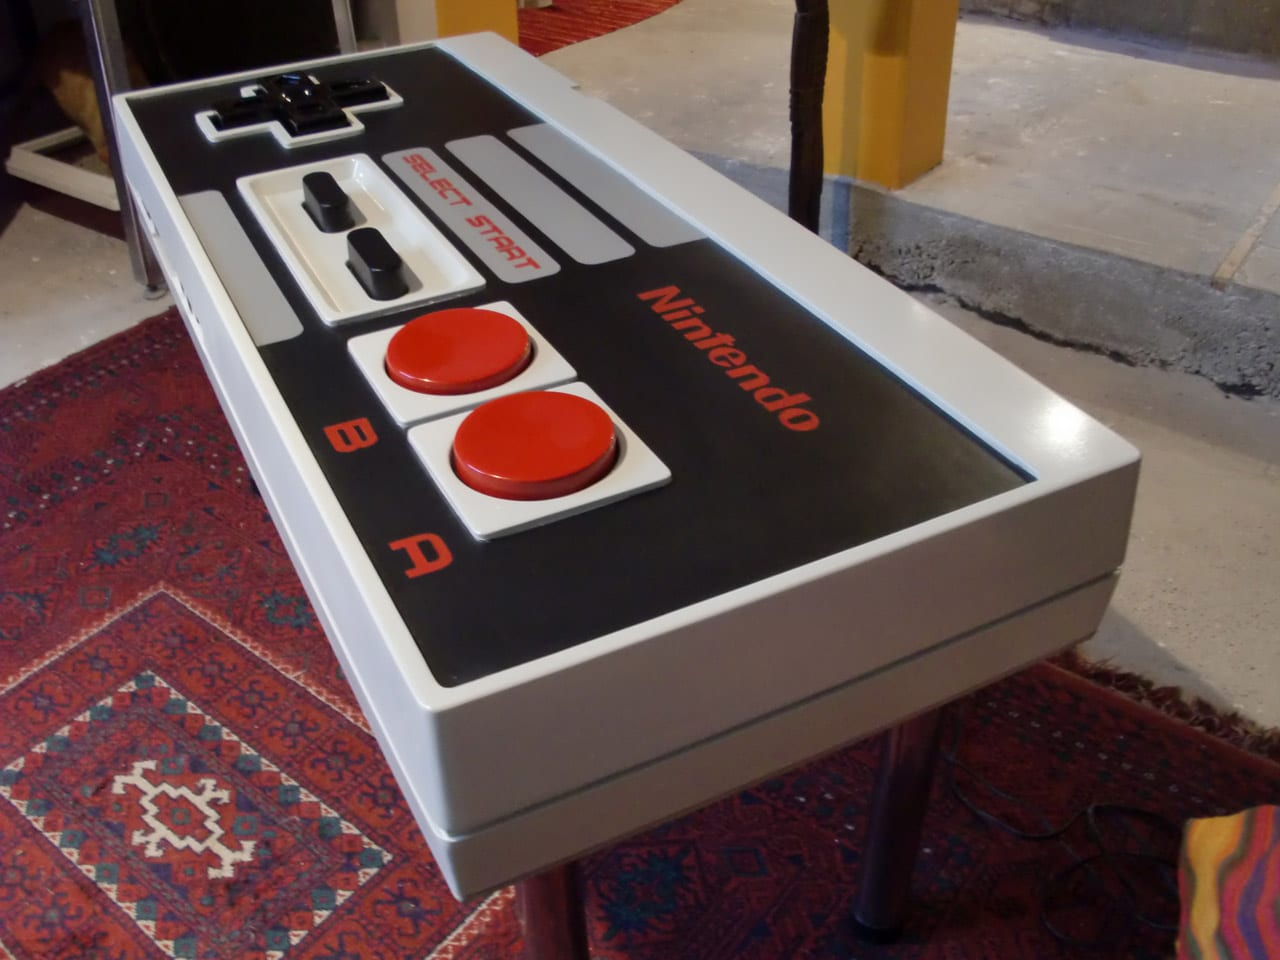 Nintendo Tisch Bauen A Giant Functional Nintendo Nes Controller Coffee Table